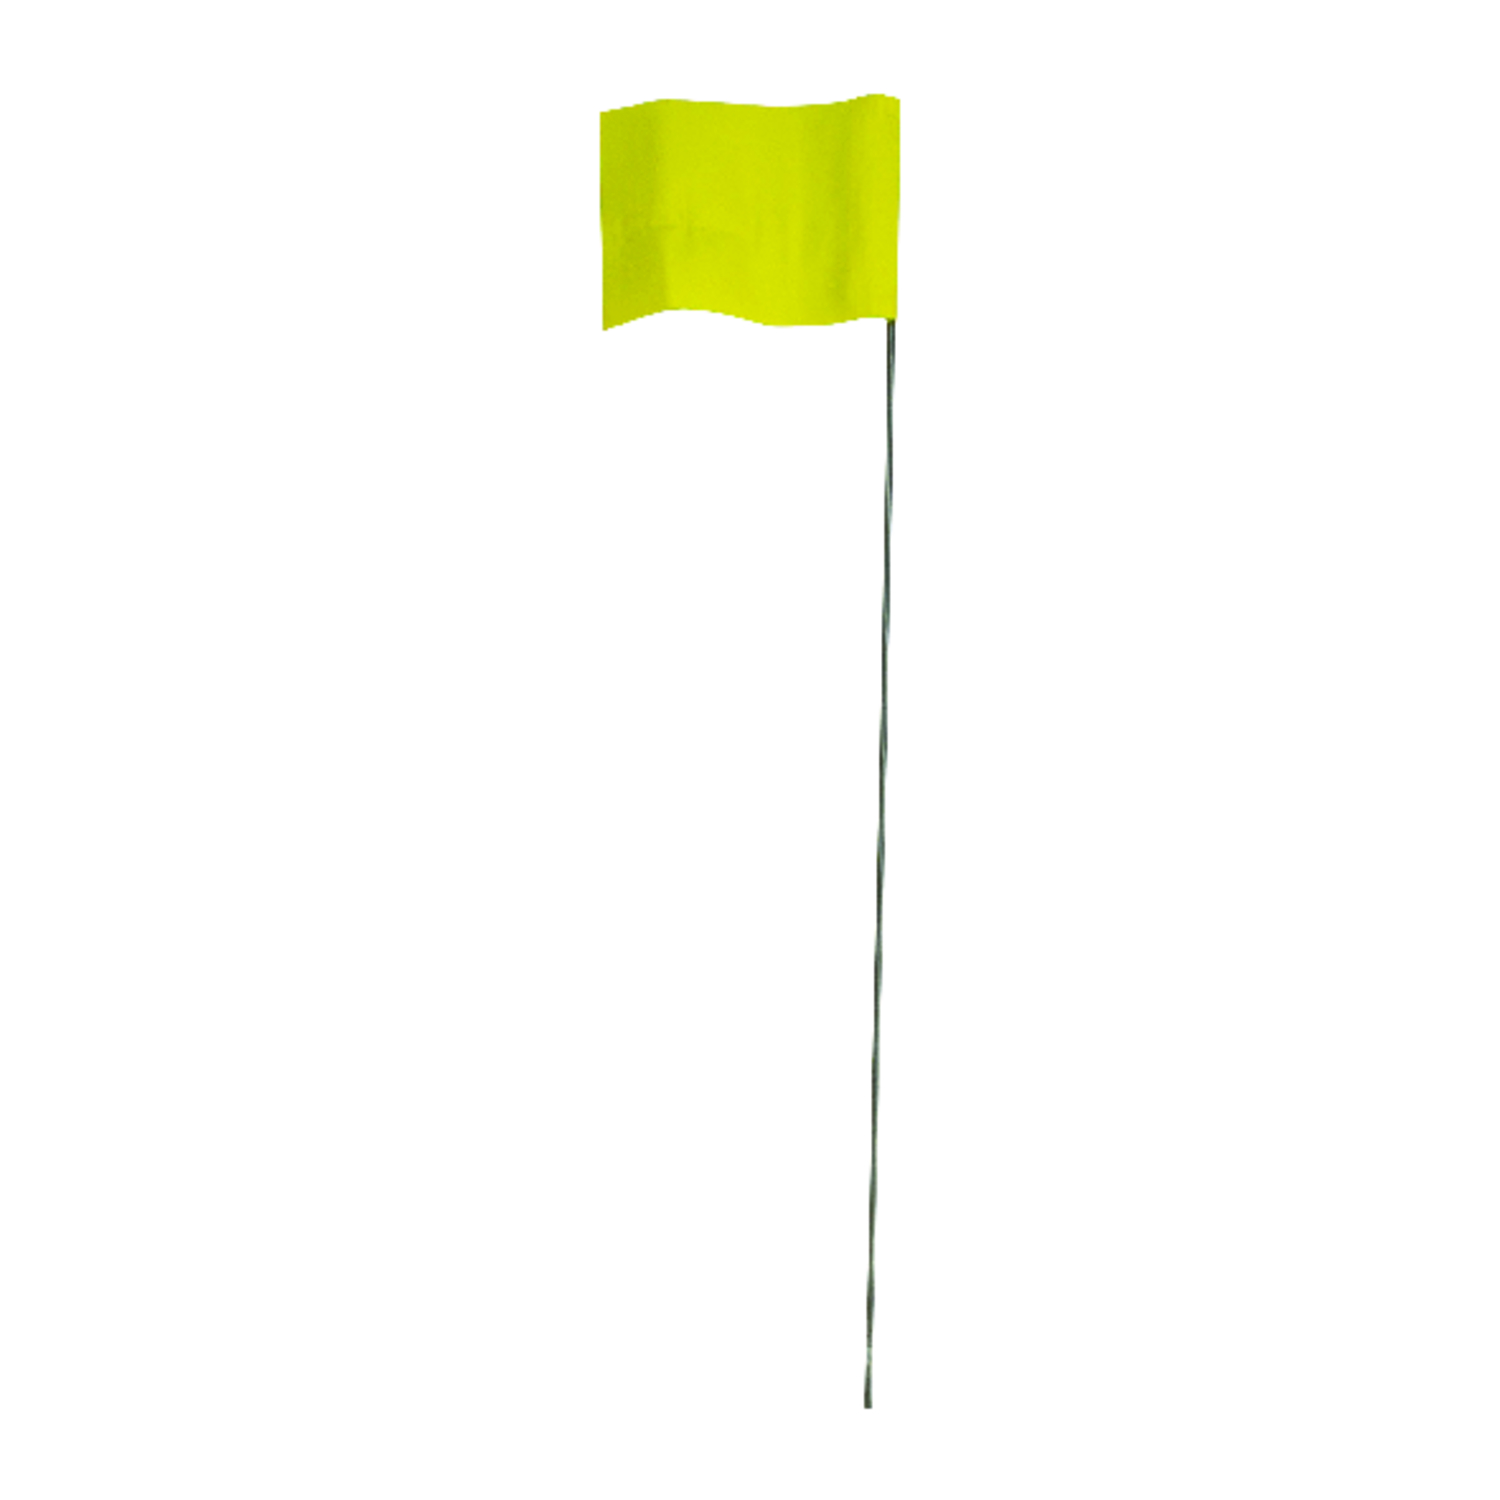 C.H. Hanson  15 in. Marking Flags  100  Plastic  Yellow